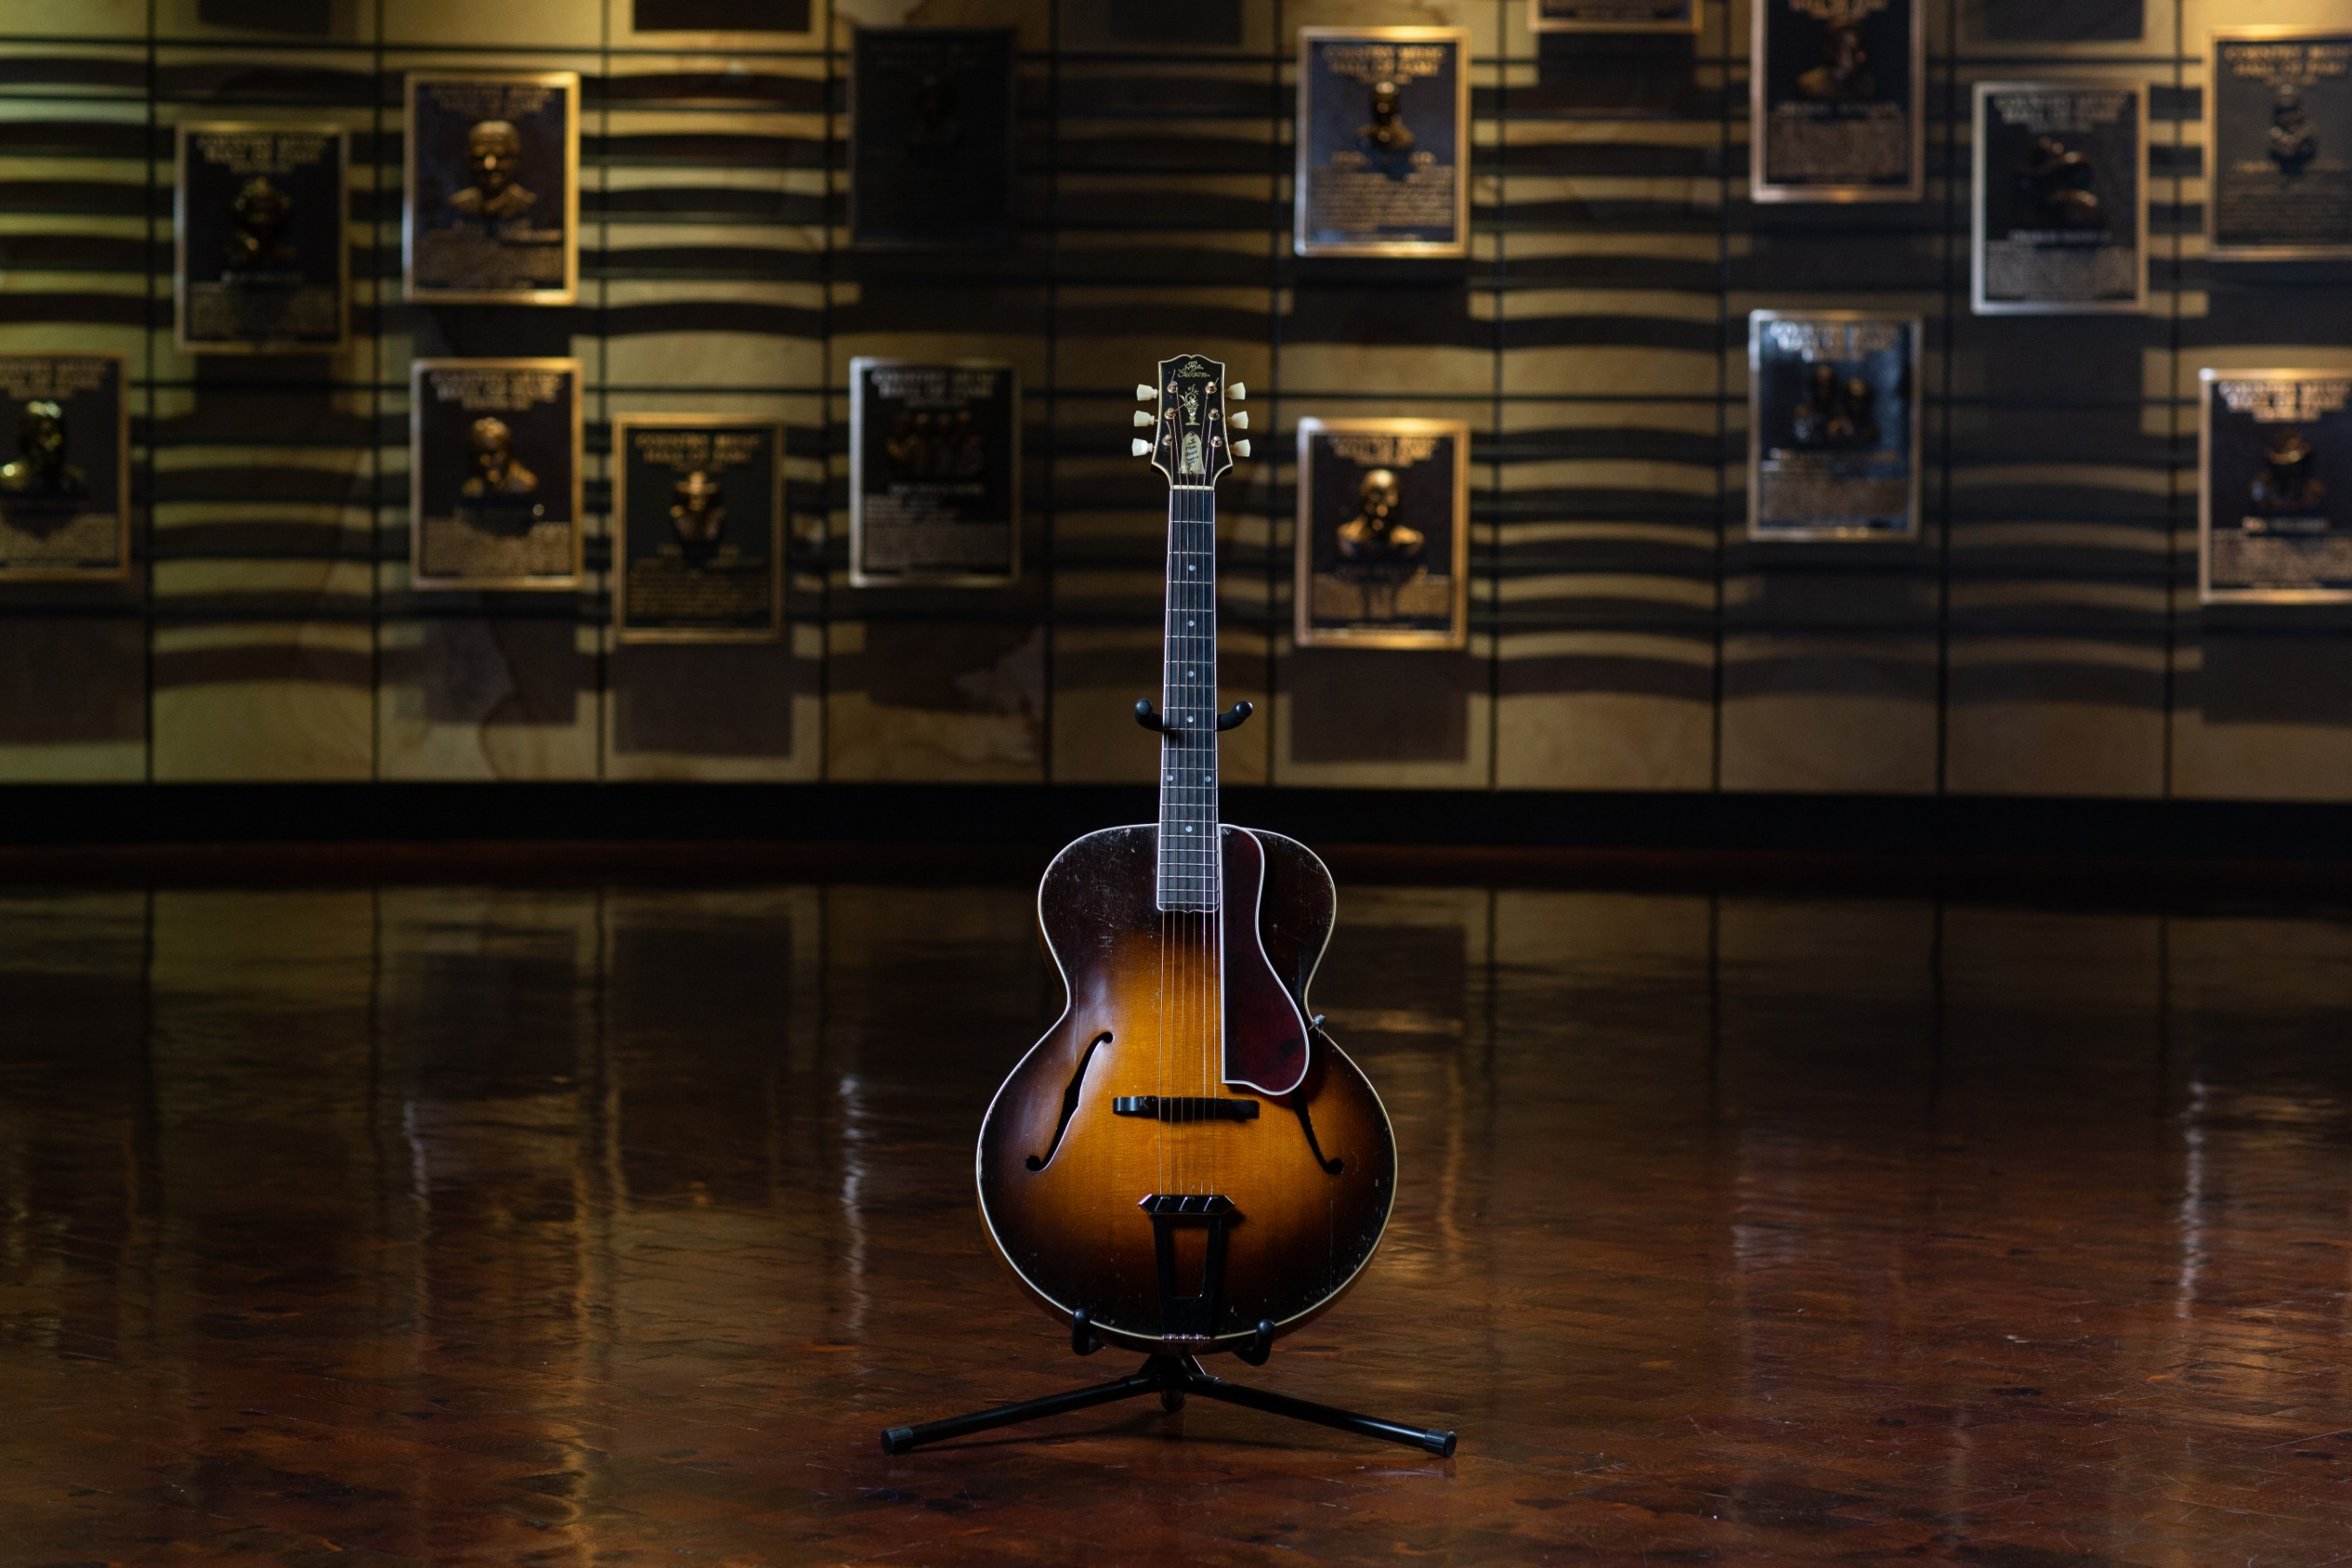 Maybelle Carter's 1928 Gibson L-5 guitar (museum collection). Photo by Bob Delevante for the Country Music Hall of Fame and Museum.